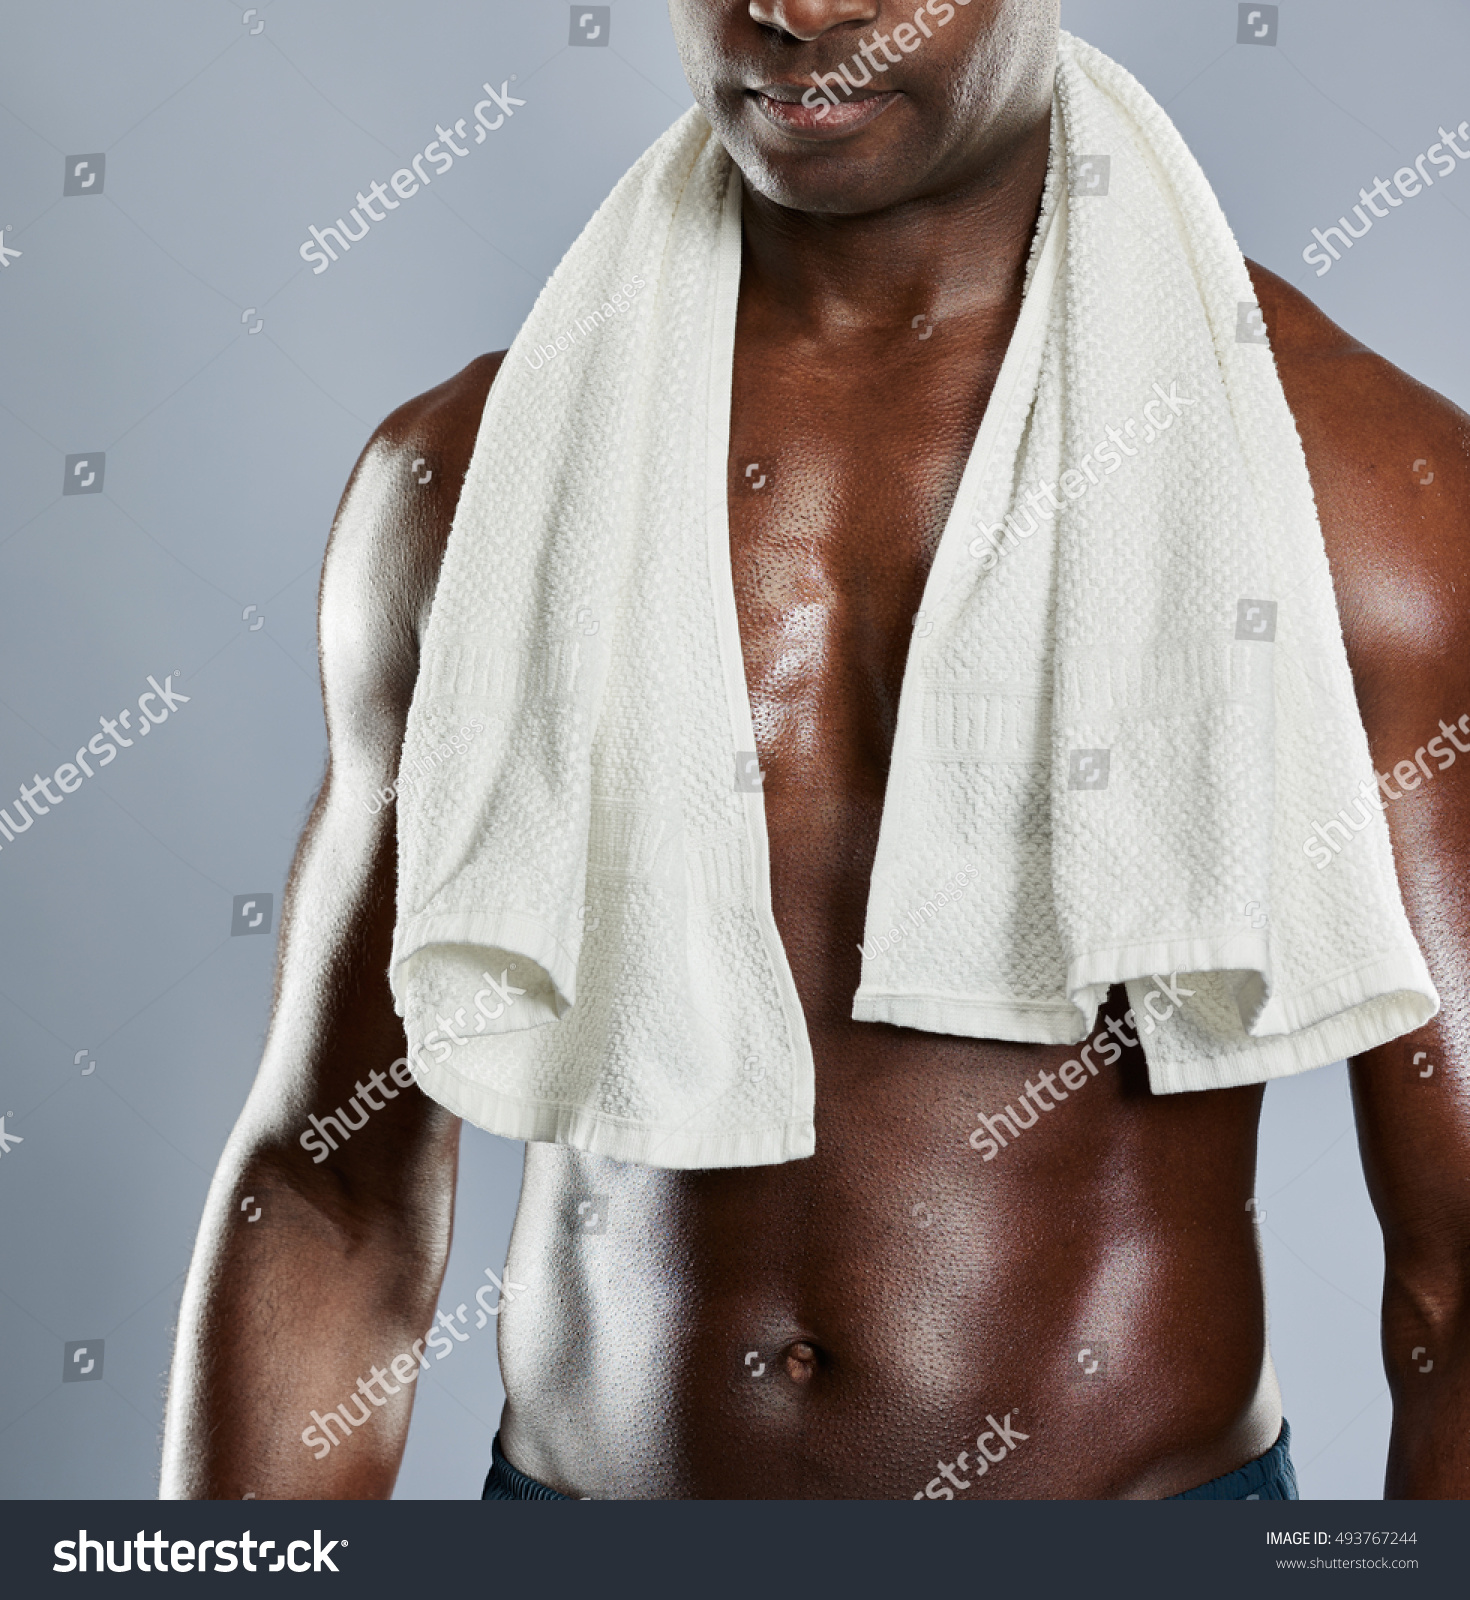 Unidentifiable Muscular Chest Black Man Towel Stock Photo Royalty